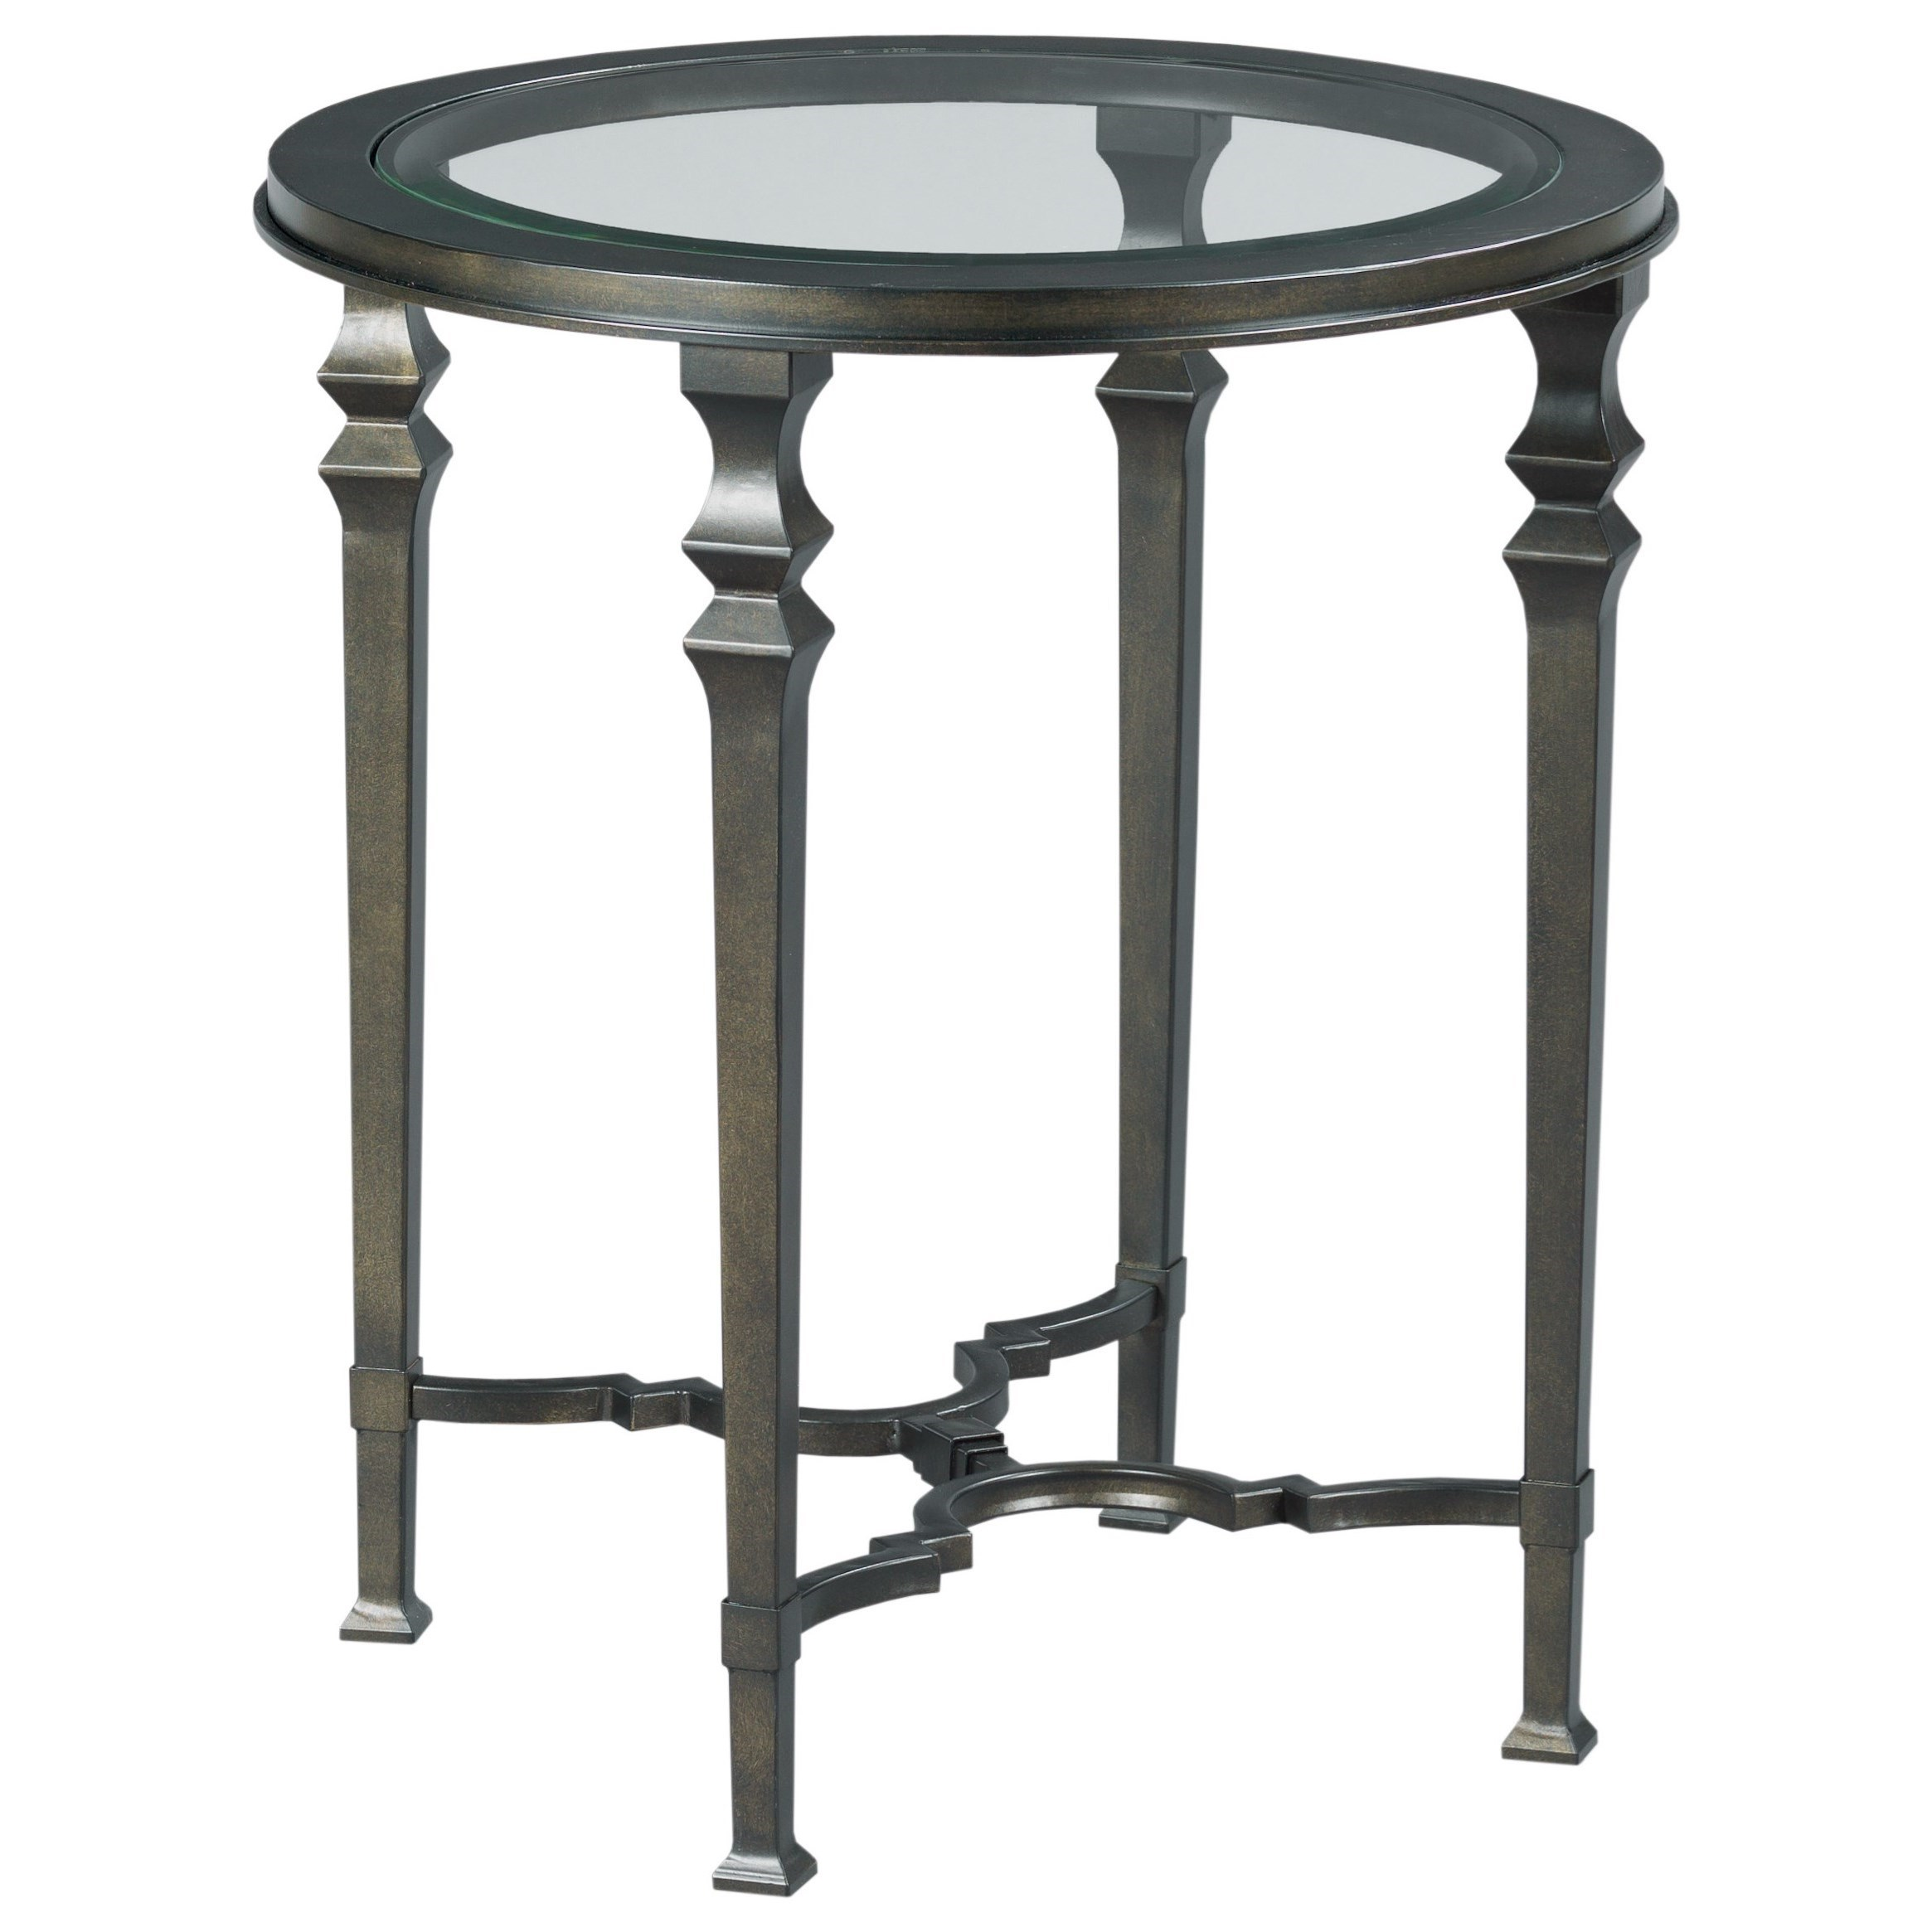 Paragon Round End Table by England at EFO Furniture Outlet